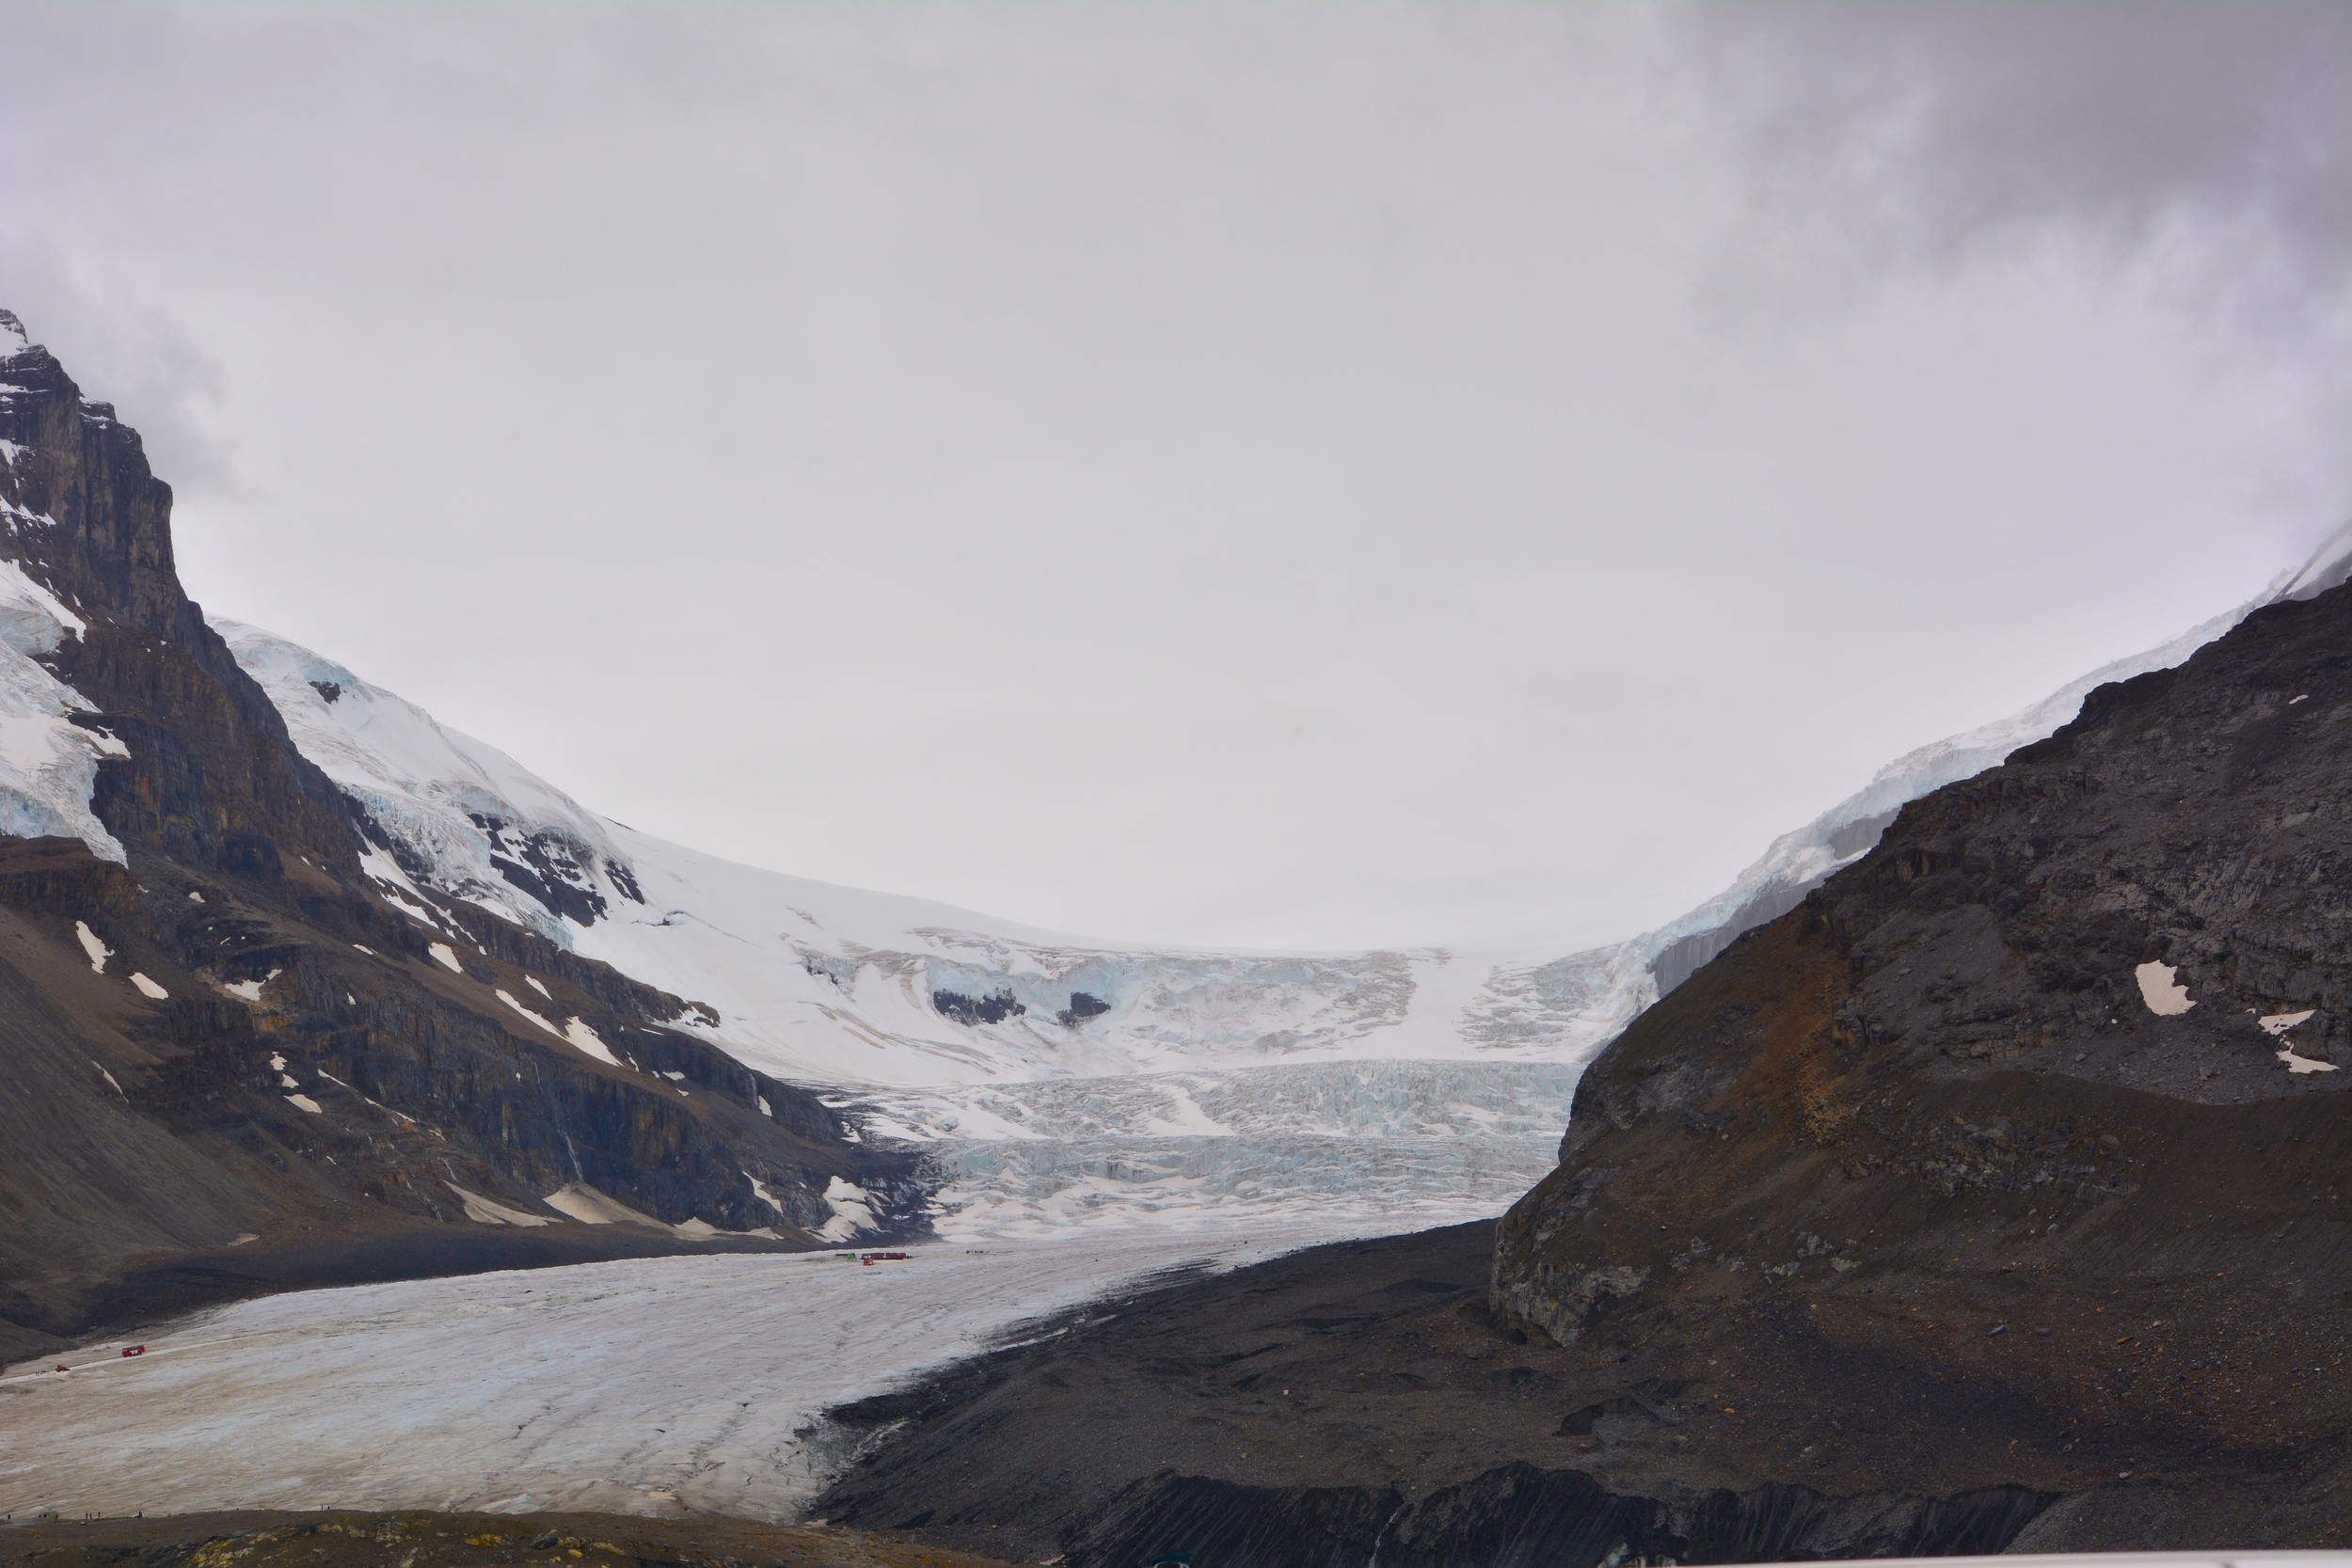 Views of the Columbia Icefield along the Icefield Parkway